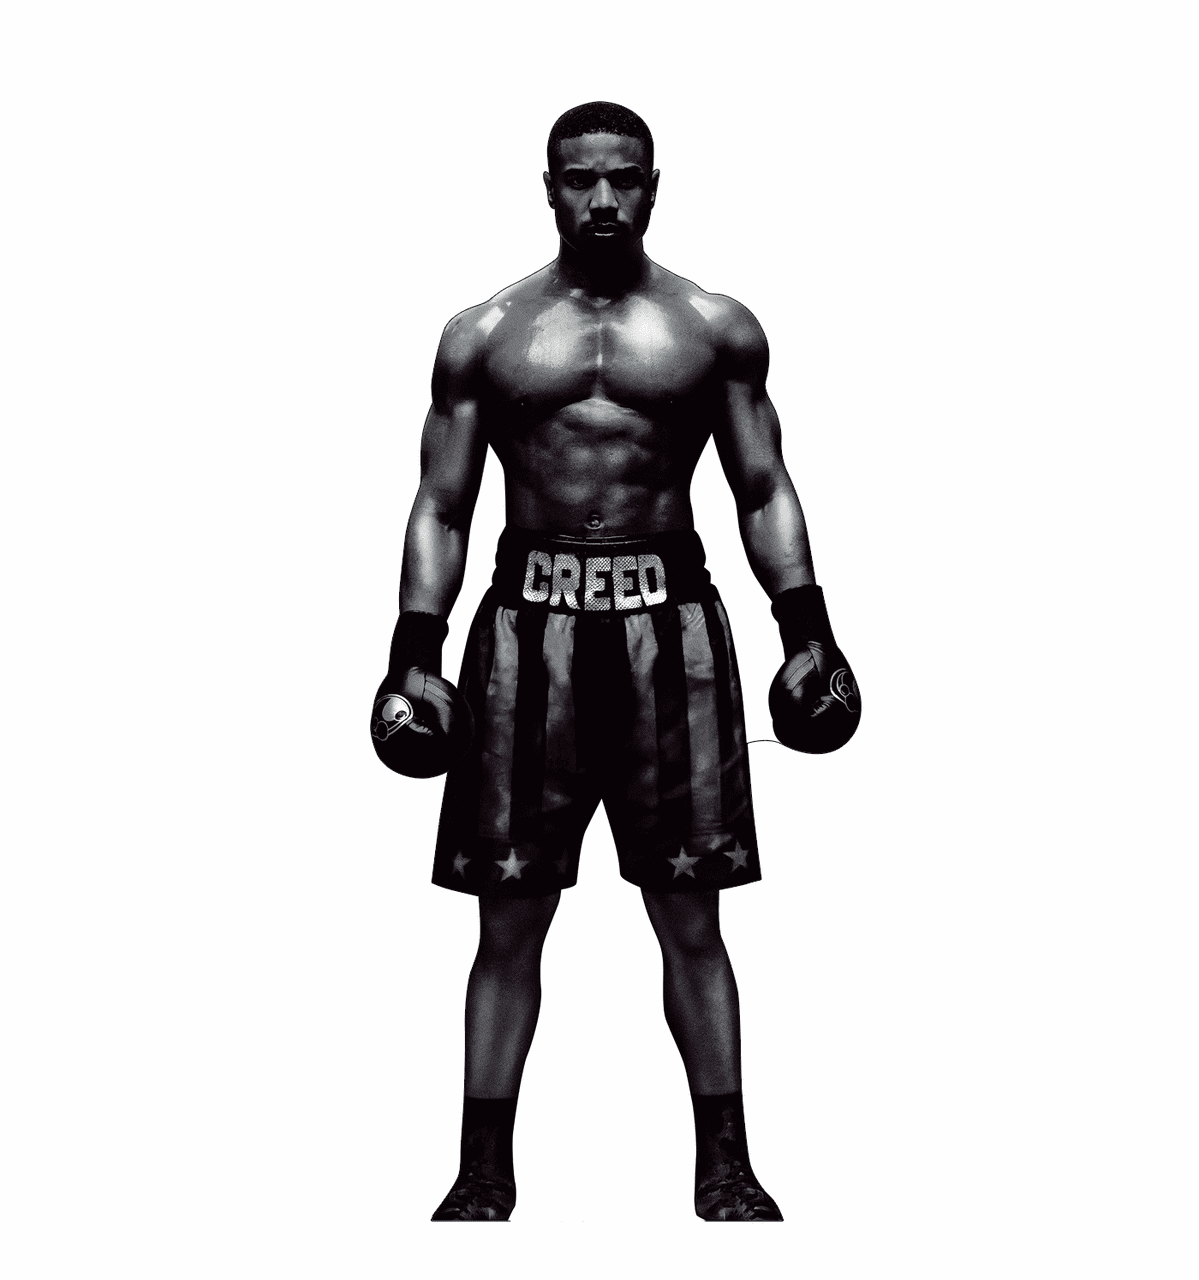 Black and White Adonis Creed Standee